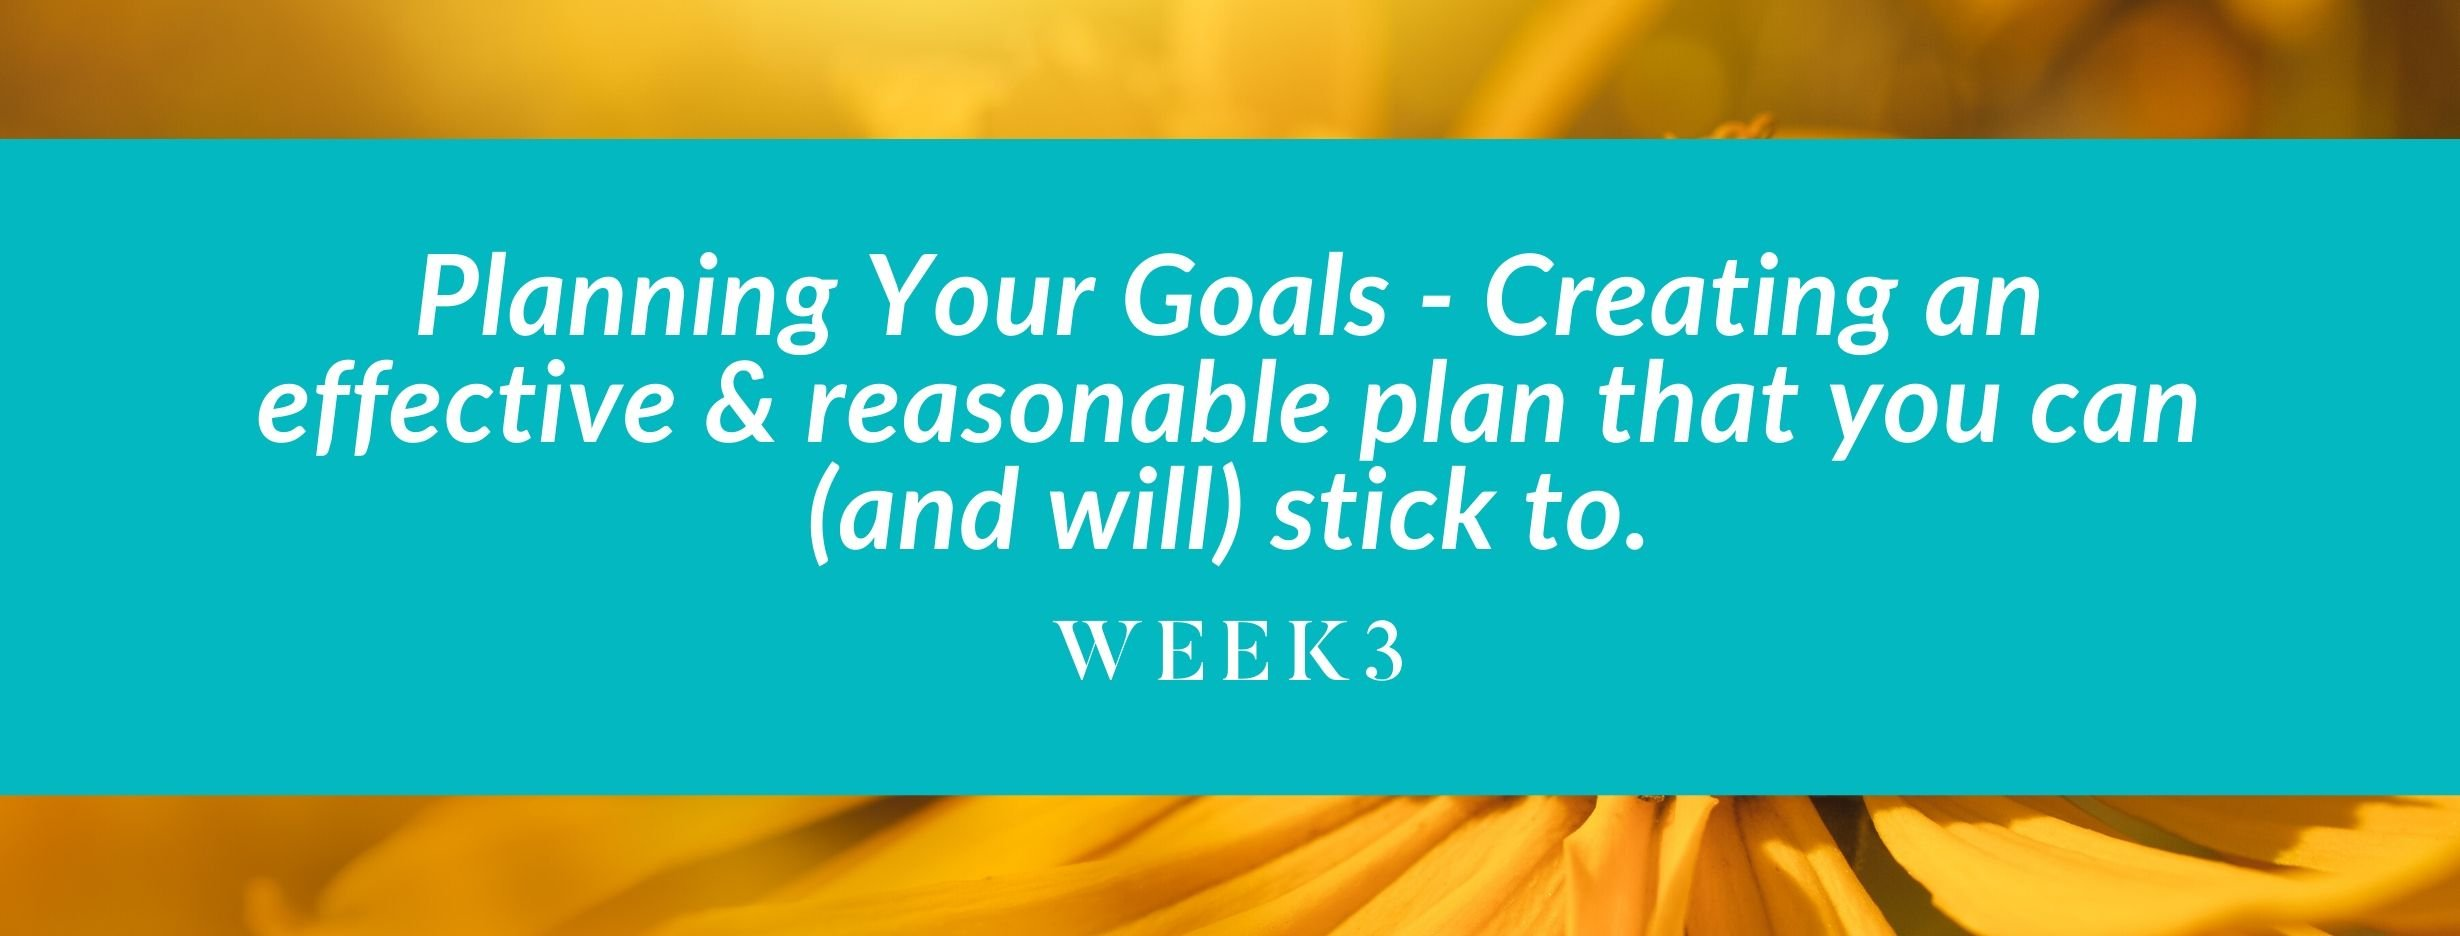 Planning Your Goals - Creating an effective & reasonable plan that you can (and will) stick to.